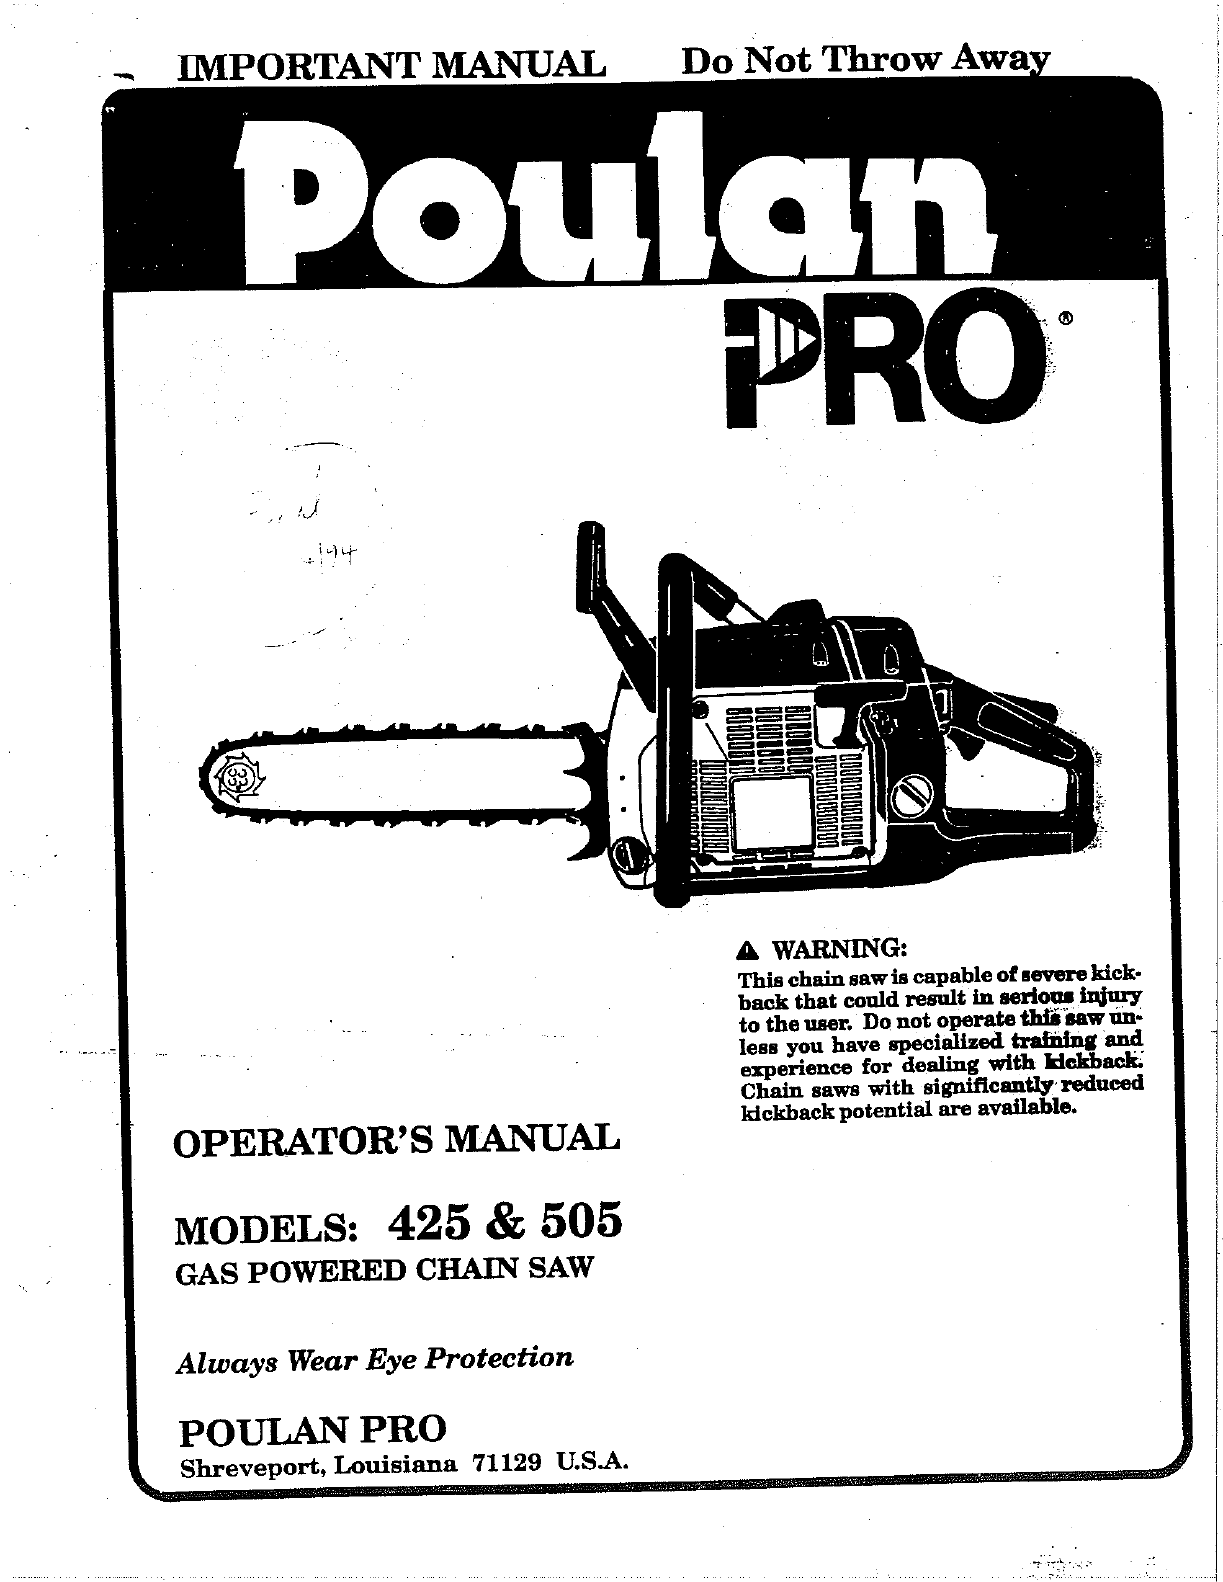 poulan chainsaw 425 user guide